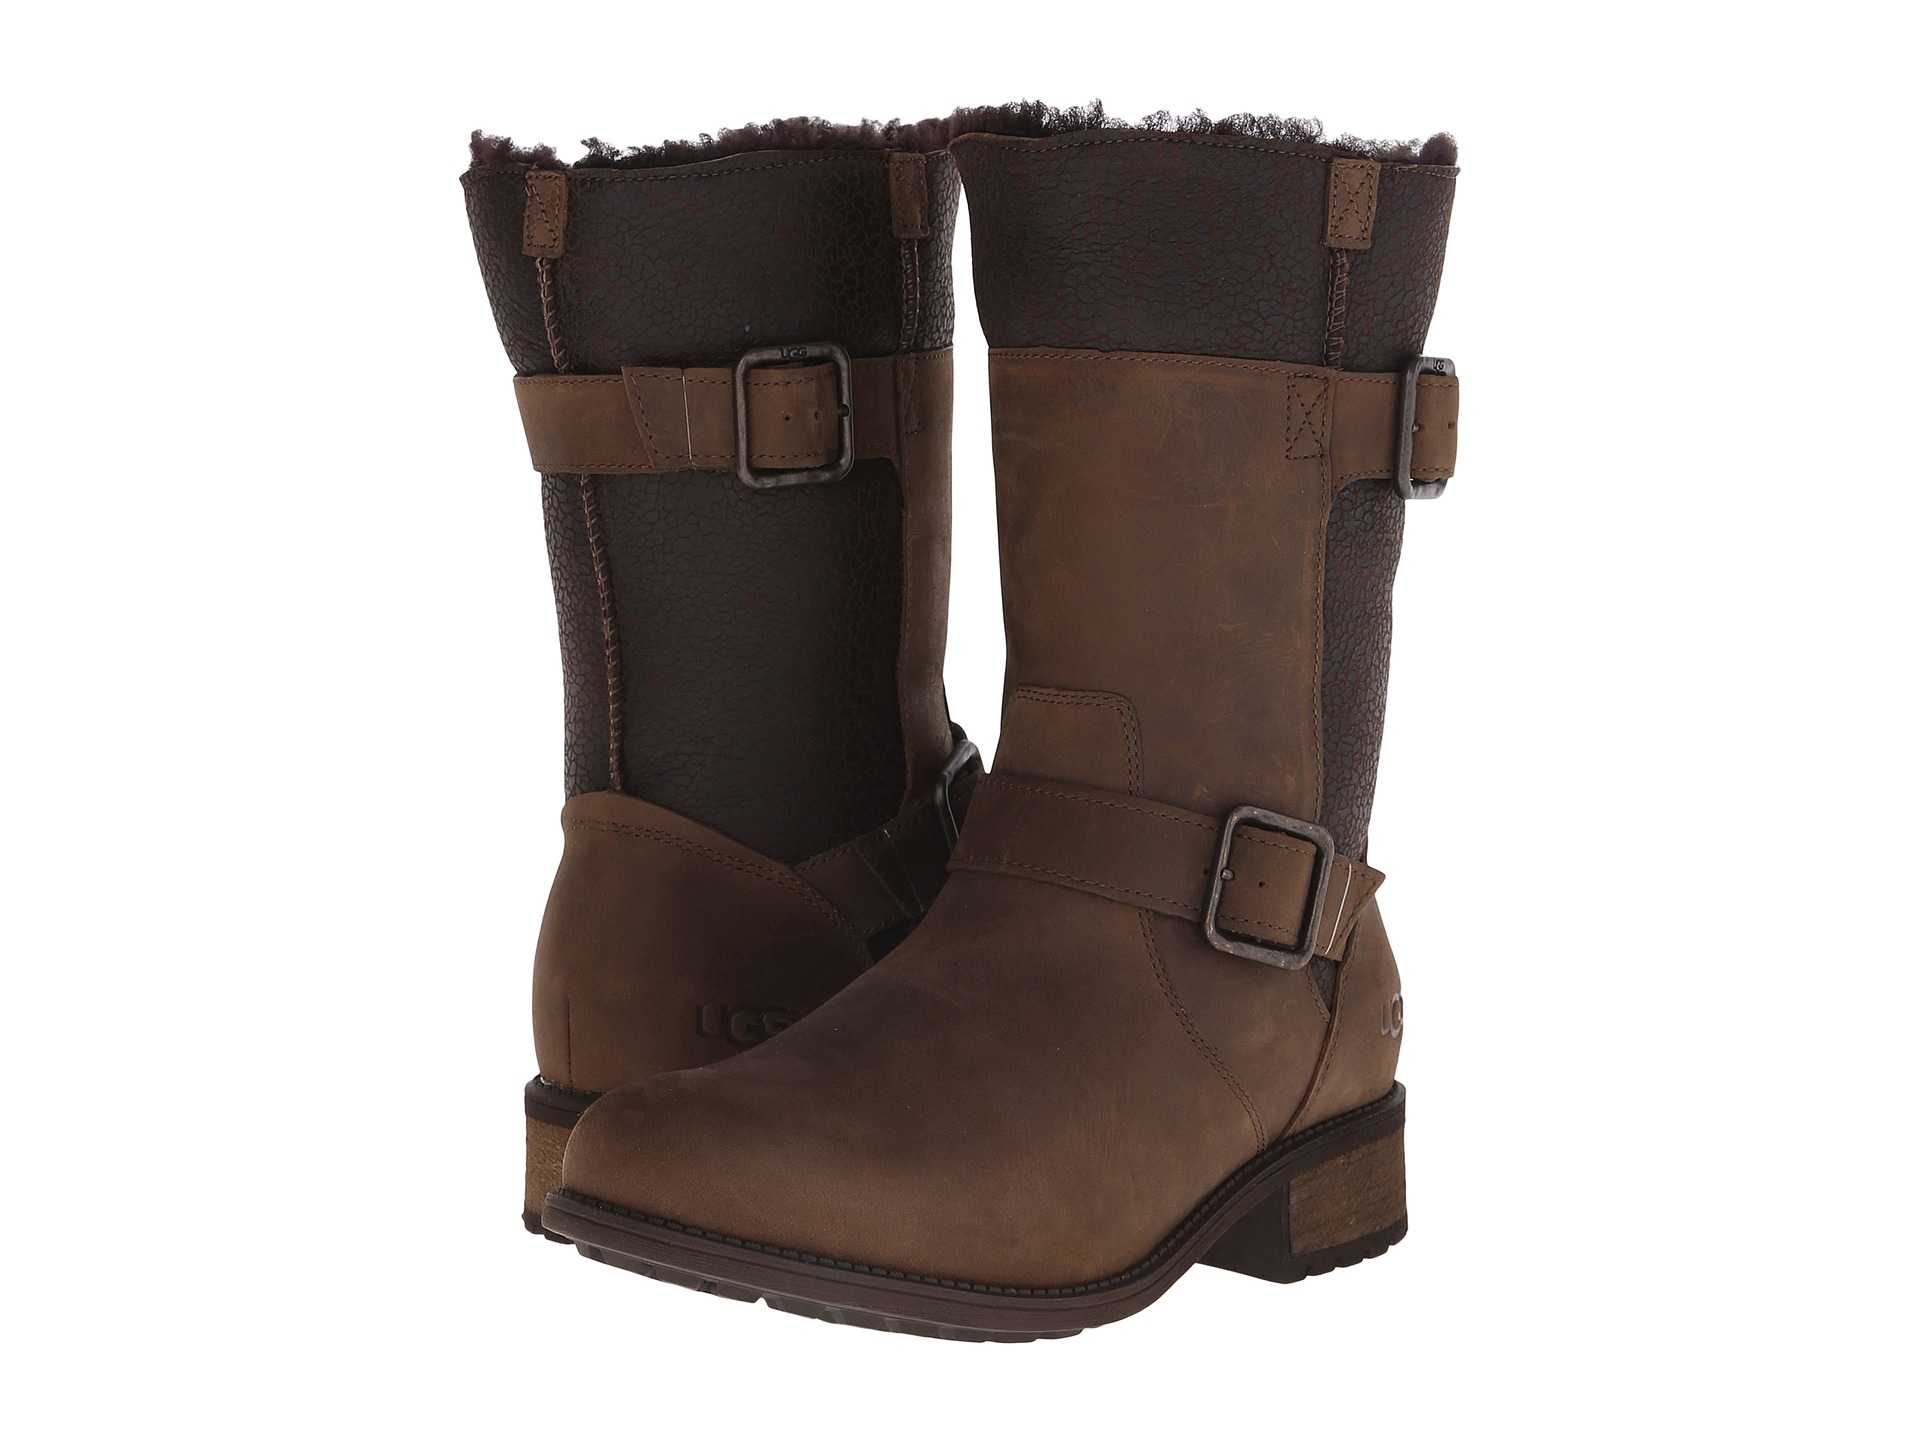 88bb11699eb New Ugg Boots At Zappos - cheap watches mgc-gas.com